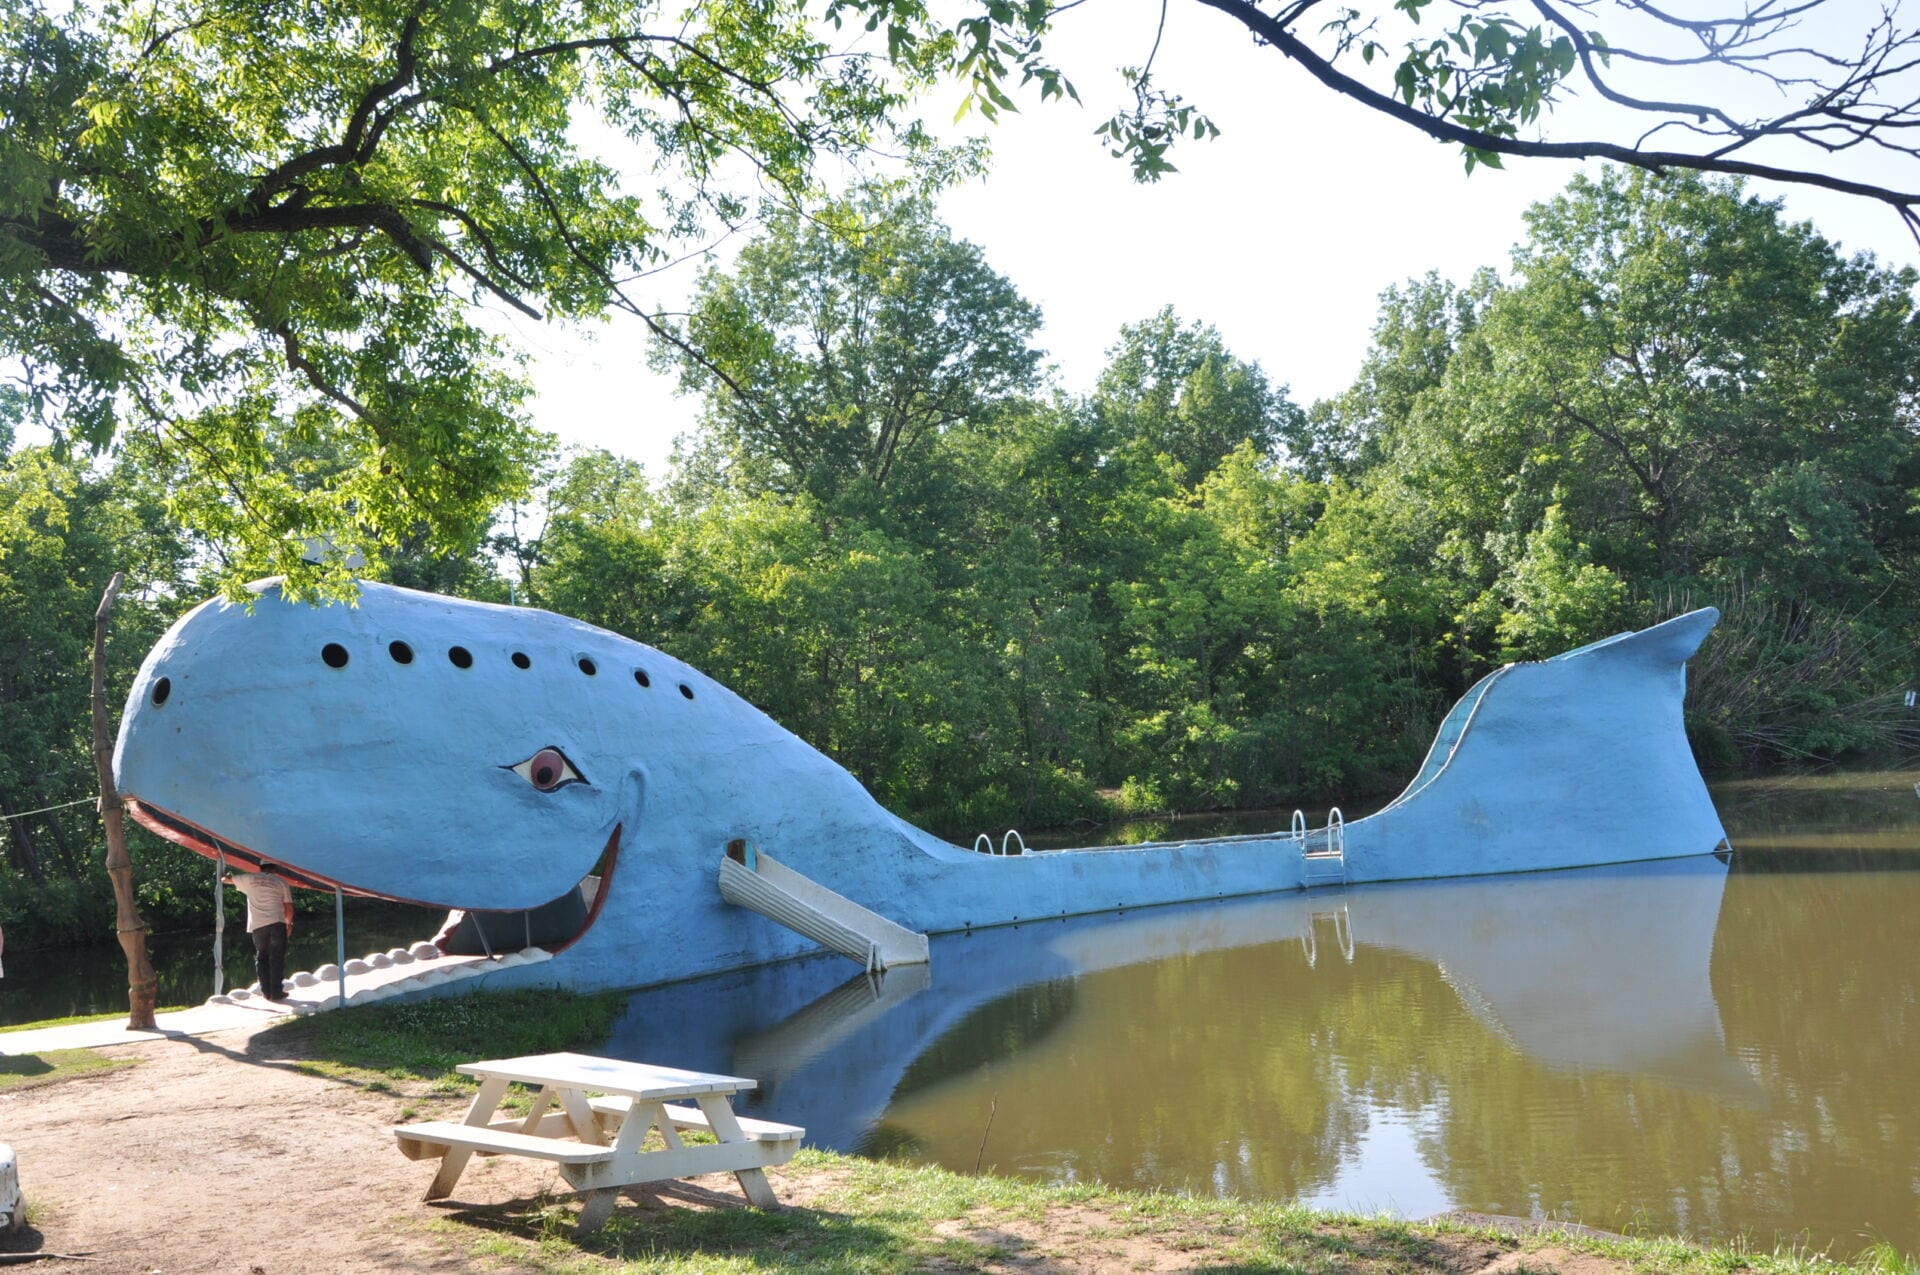 The Blue Whale Route 66 Oklahoma